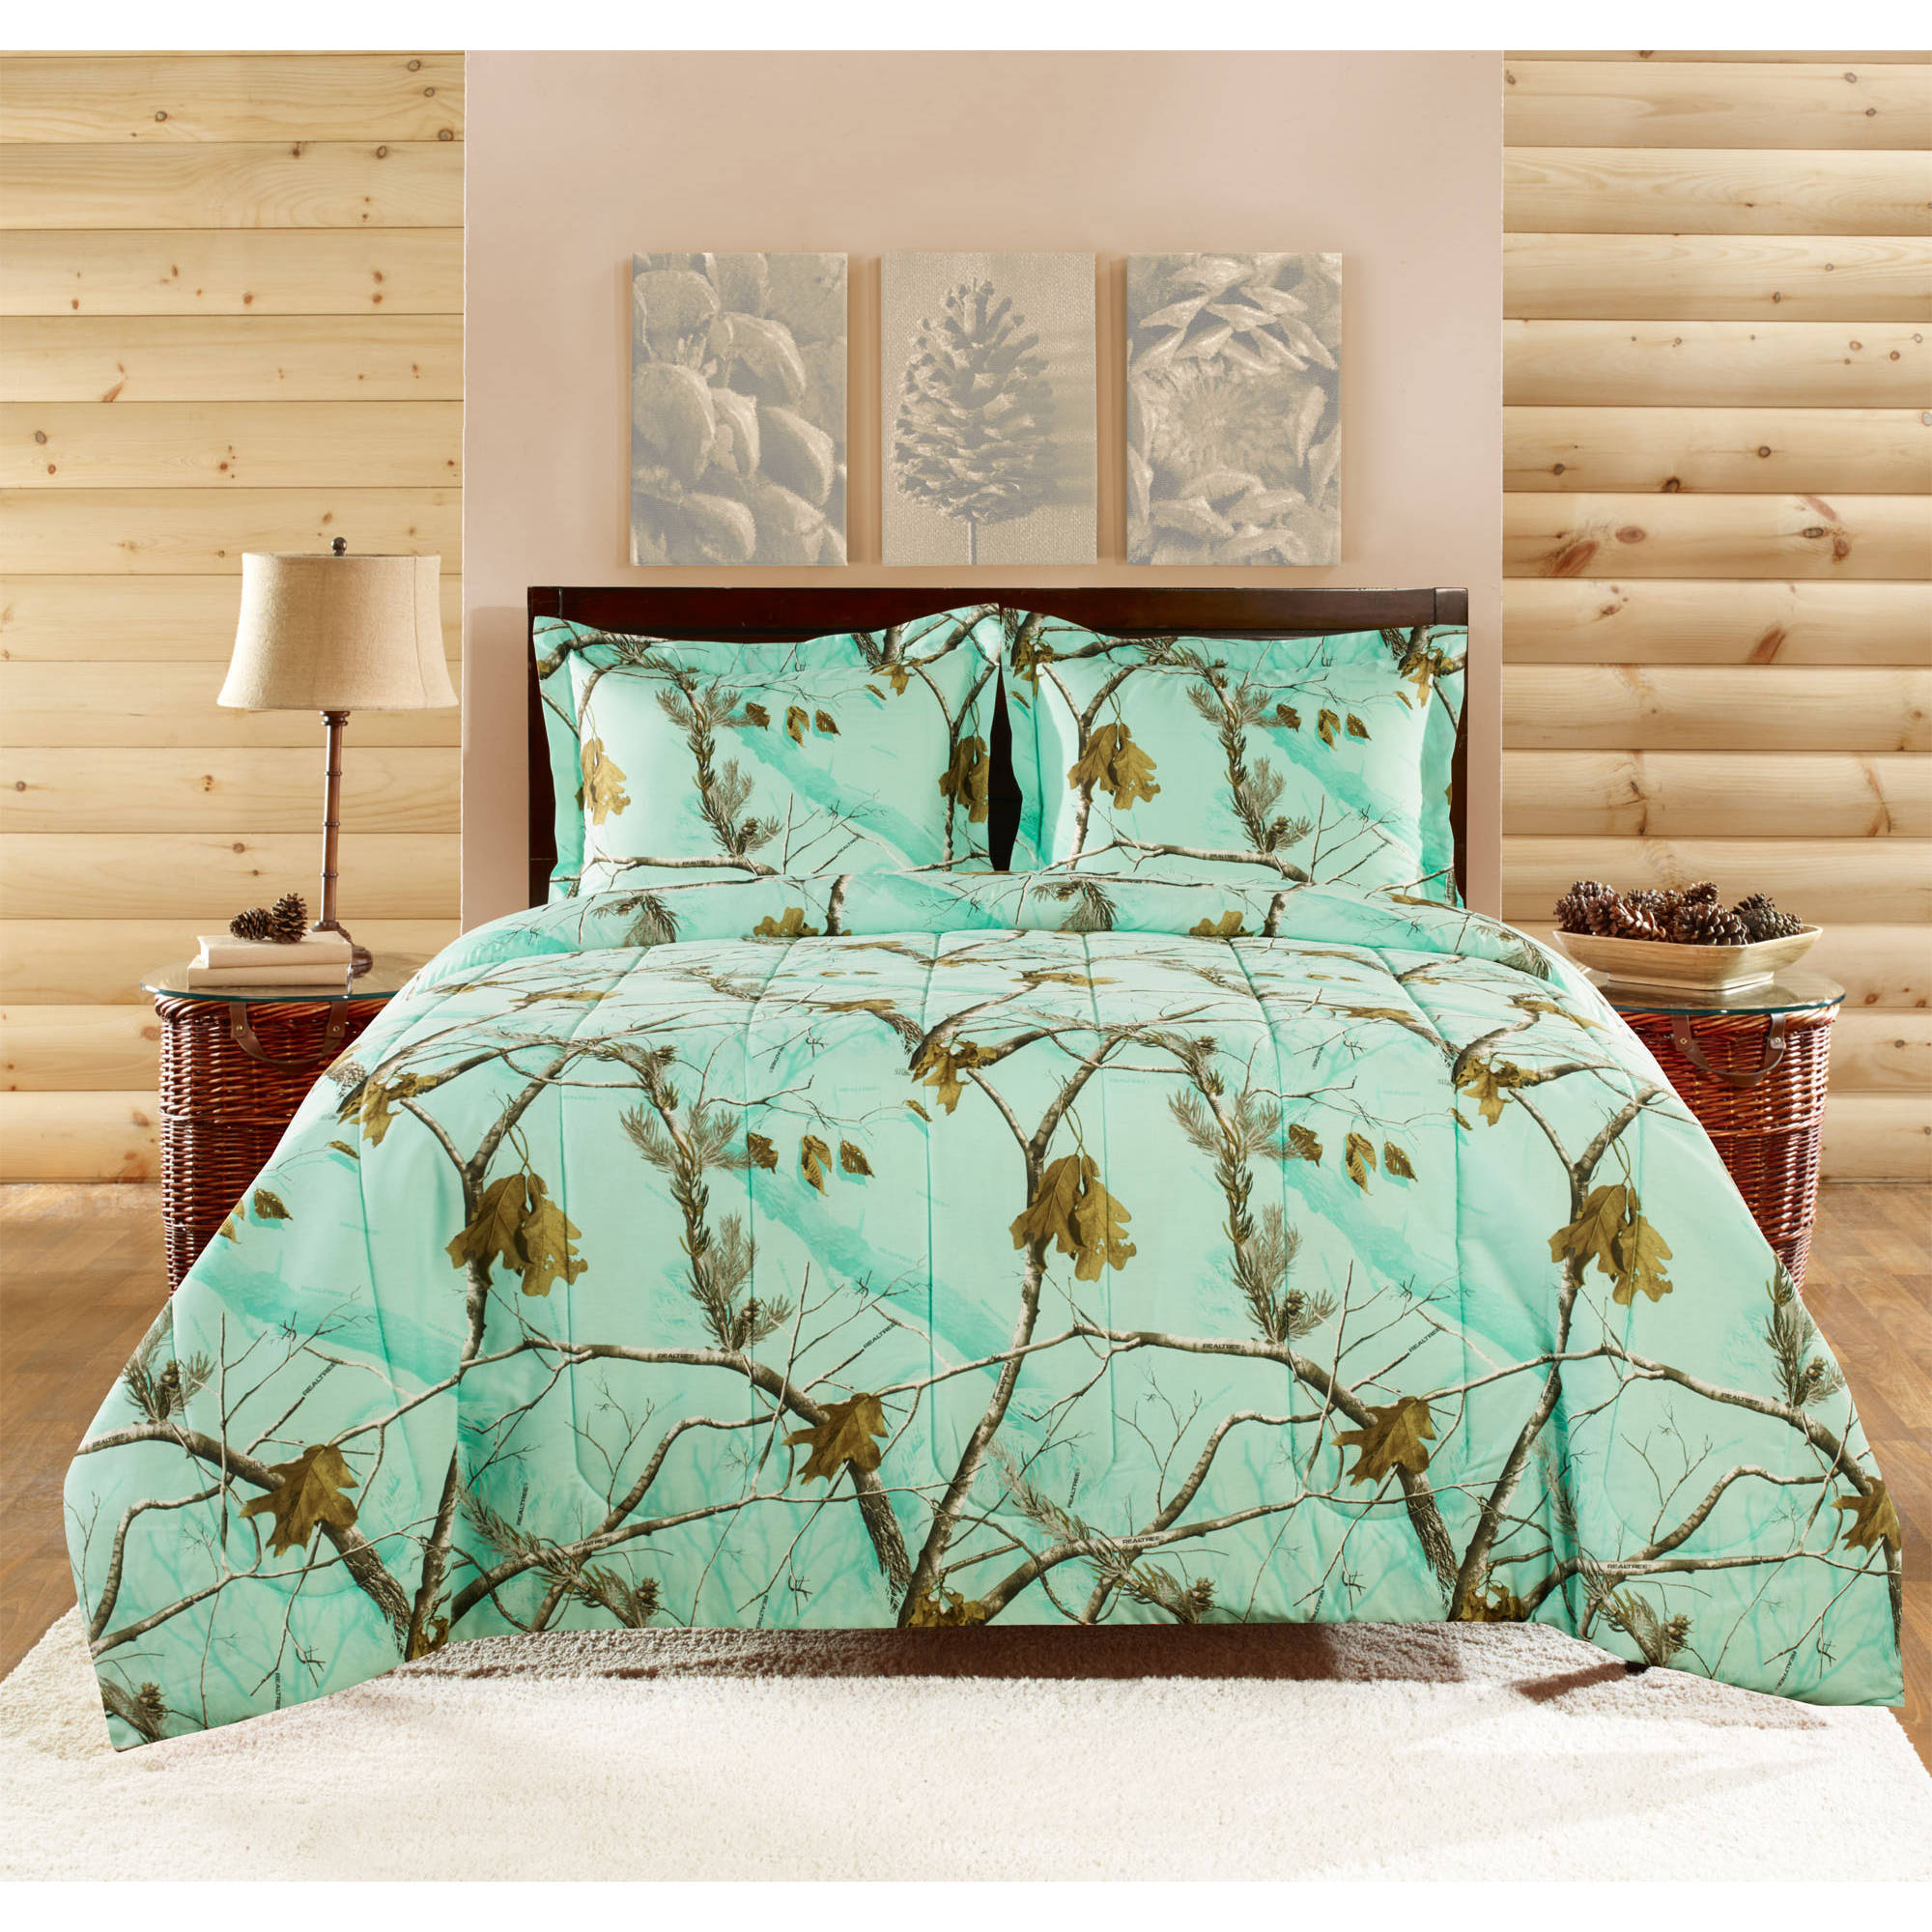 Realtree Brights Bedding Comforter Set